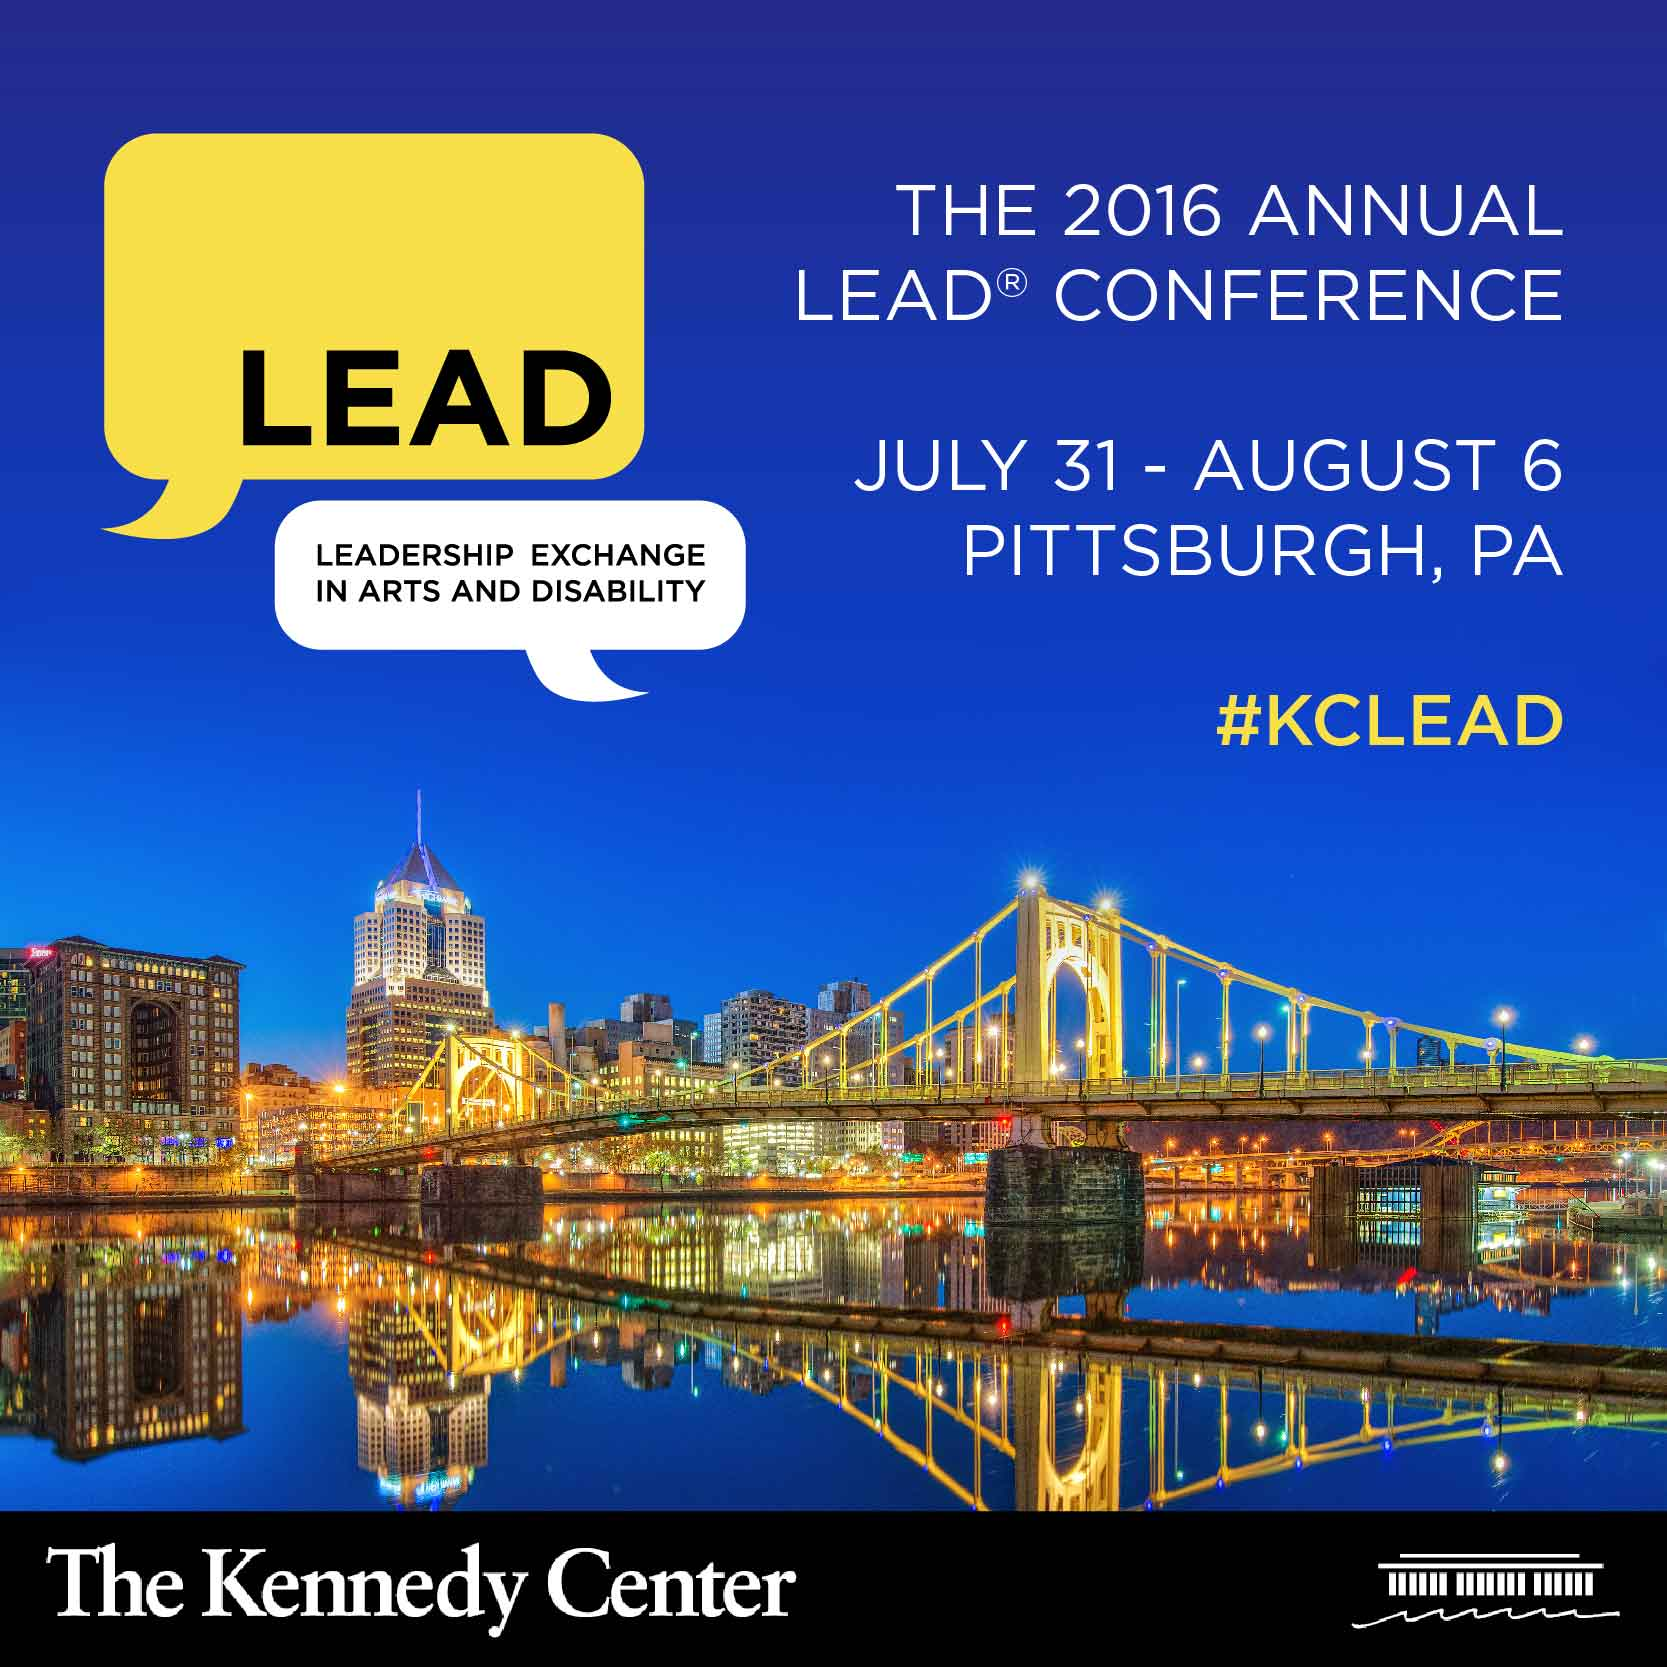 Image of Pittsburgh at night, with the text: The 2016 Annual LEAD Conference - Jul 31 to Aug 6 in Pittsburgh, PA #KCLEAD